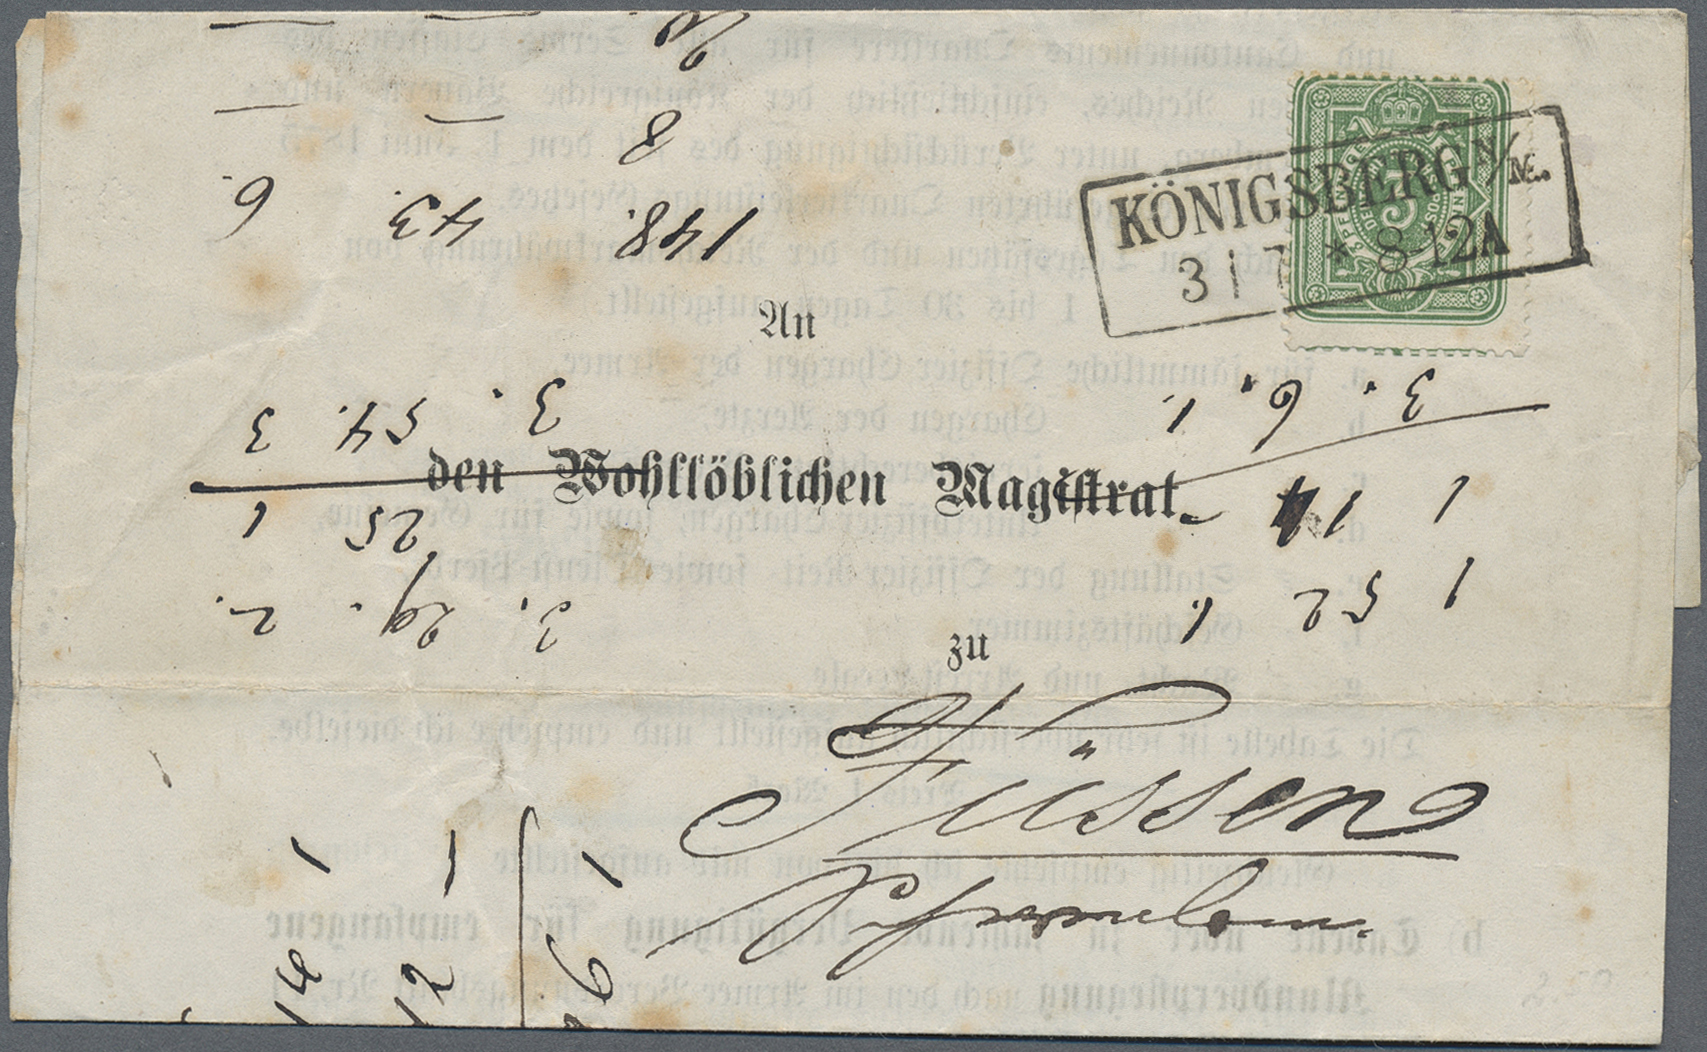 Lot 31532 - Deutsches Reich - Pfennige  -  Auktionshaus Christoph Gärtner GmbH & Co. KG Auction #40 Collections Germany, Wunderkartons